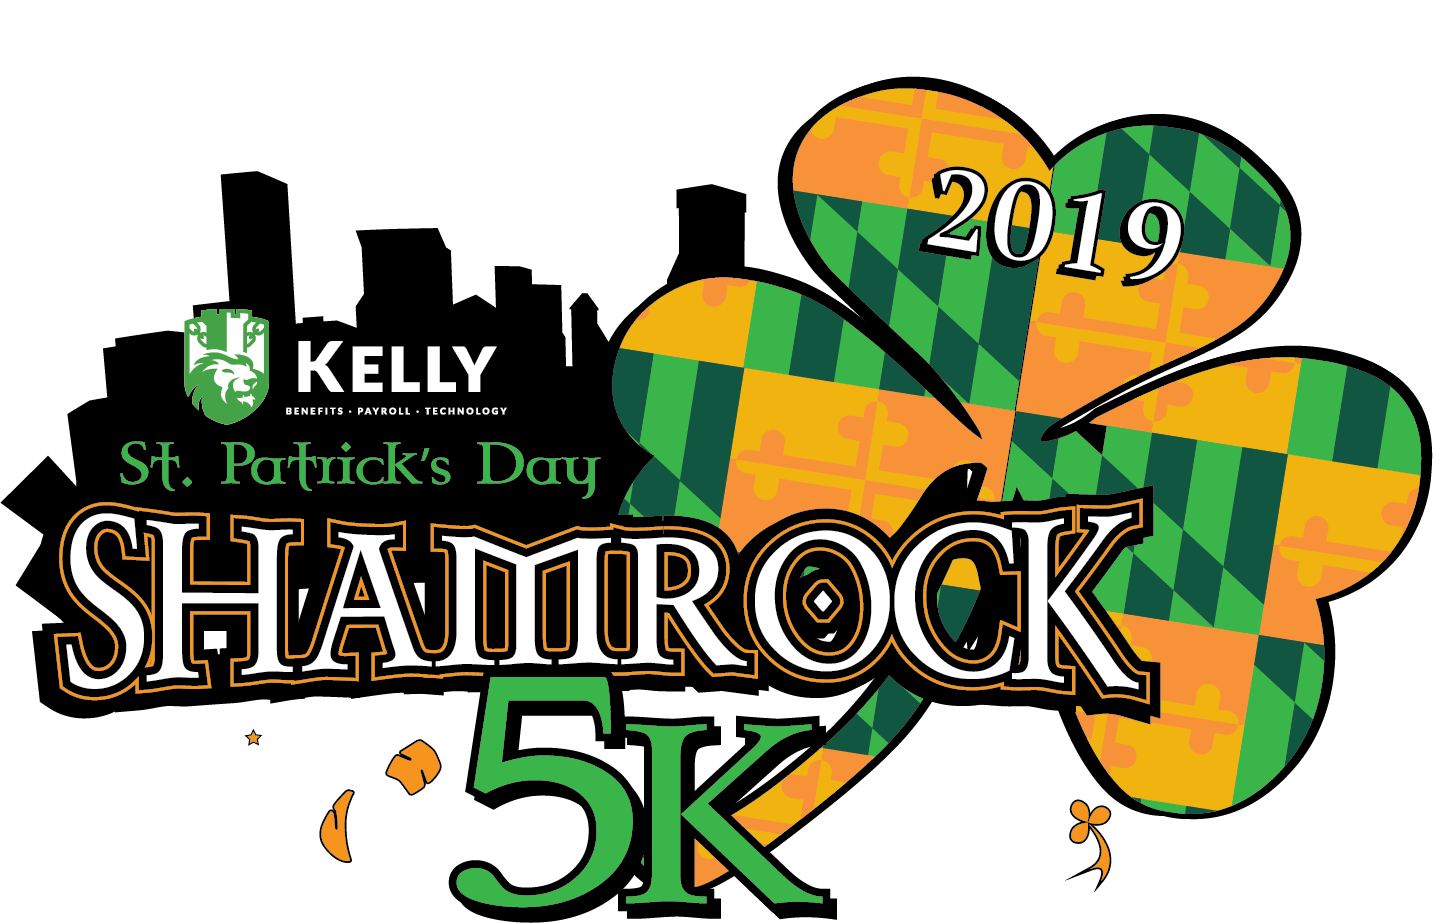 Under Armour KELLY St. Patrick's Day Shamrock 5K